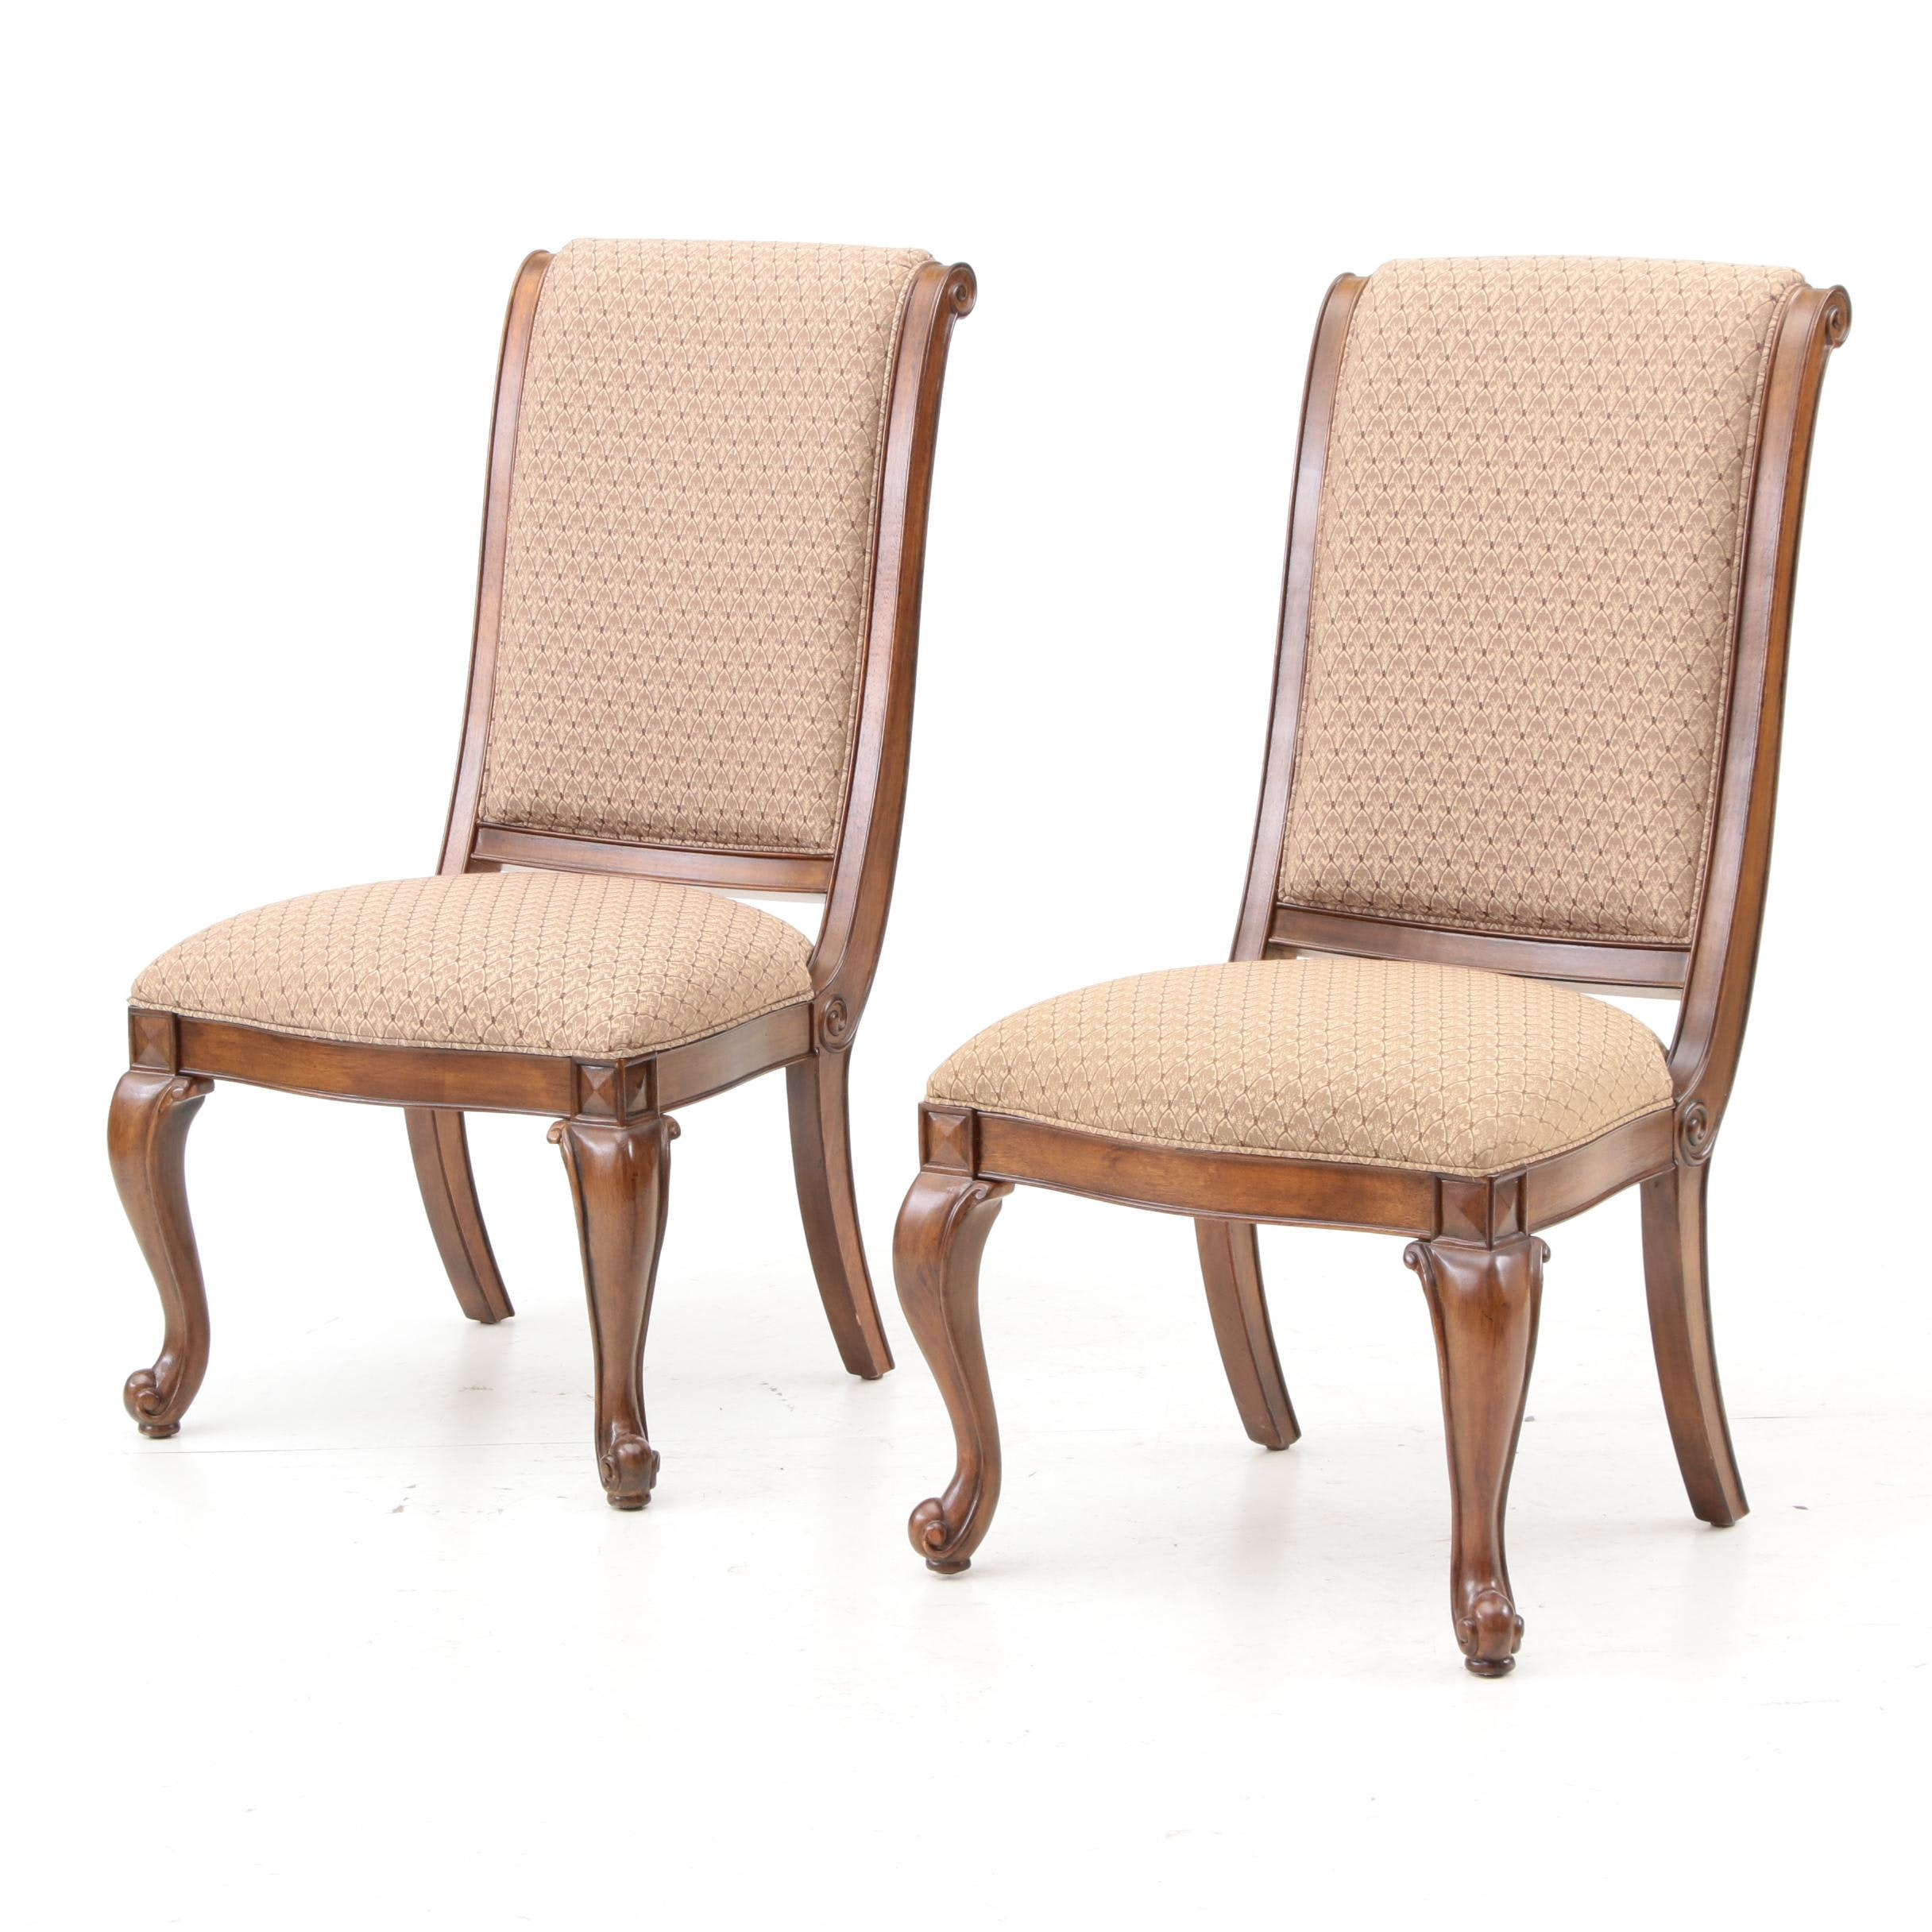 French Provincial Style Upholstered Side Chairs by American Drew